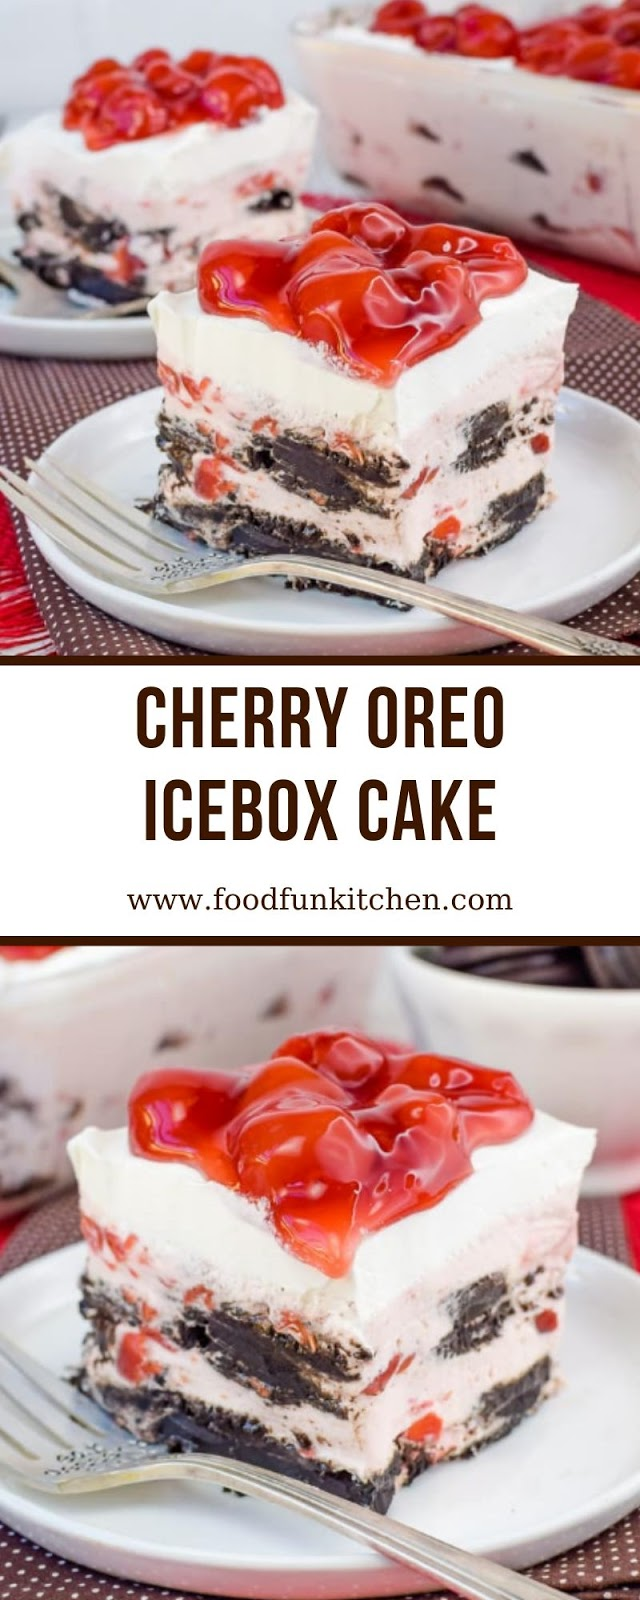 CHERRY OREO ICEBOX CAKE